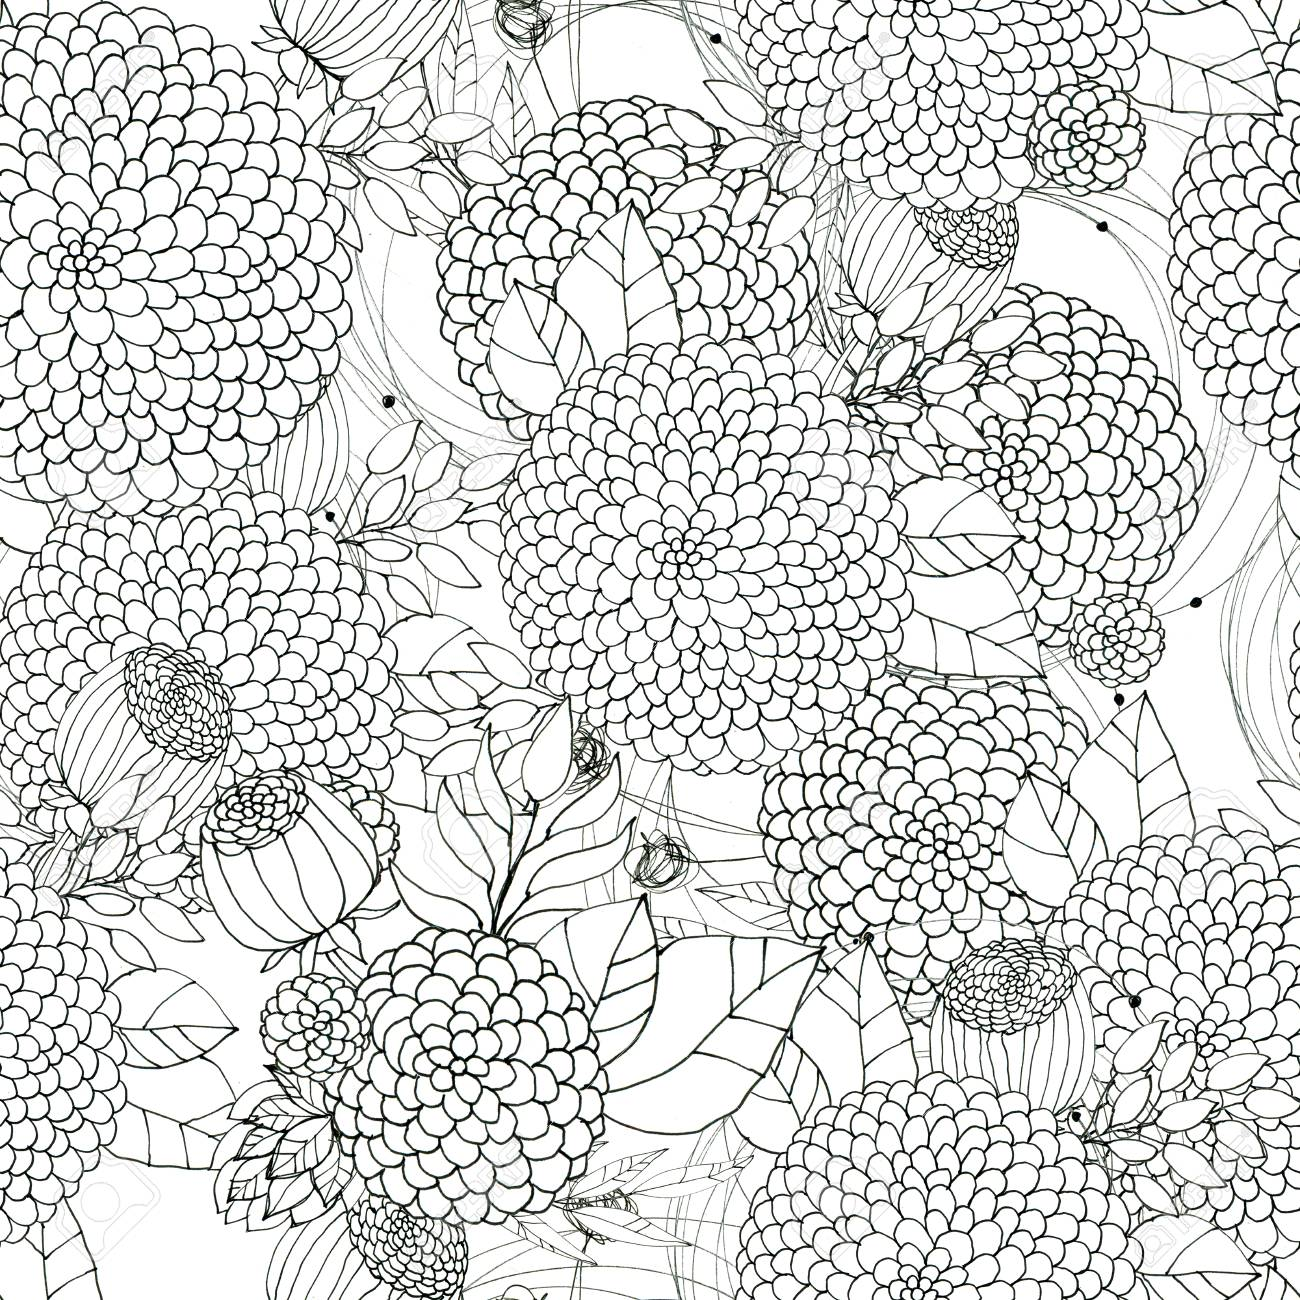 Seamless floral with abstract black and white flowers floral seamless floral with abstract black and white flowers floral outline monochrome background stock photo mightylinksfo